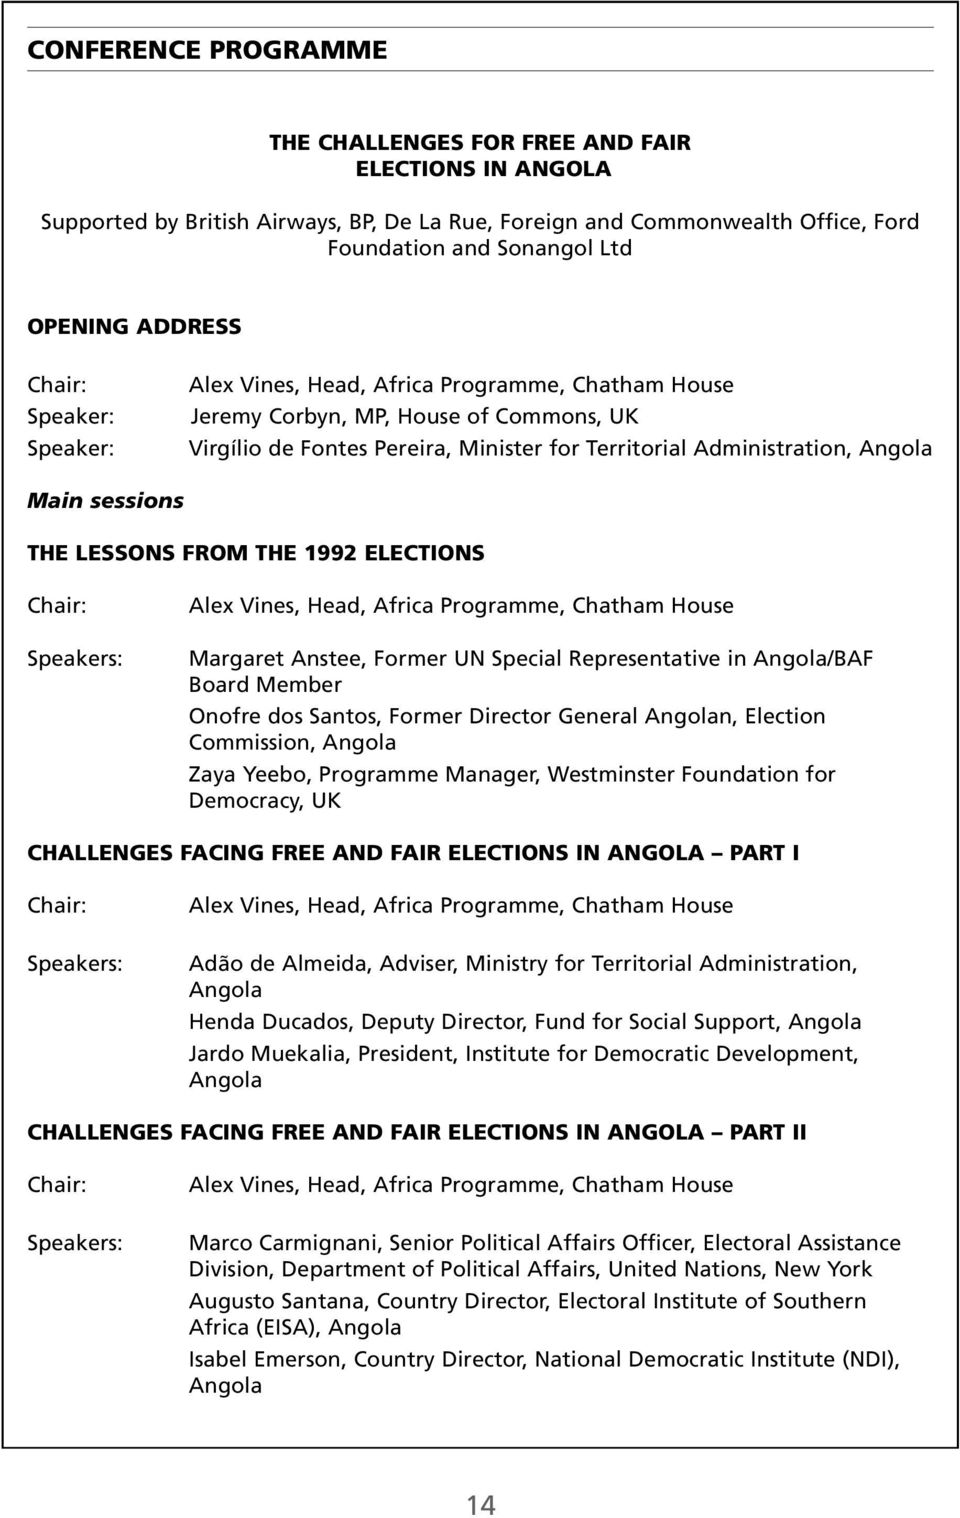 Main sessions THE LESSONS FROM THE 1992 ELECTIONS Chair: Speakers: Alex Vines, Head, Africa Programme, Chatham House Margaret Anstee, Former UN Special Representative in Angola/BAF Board Member